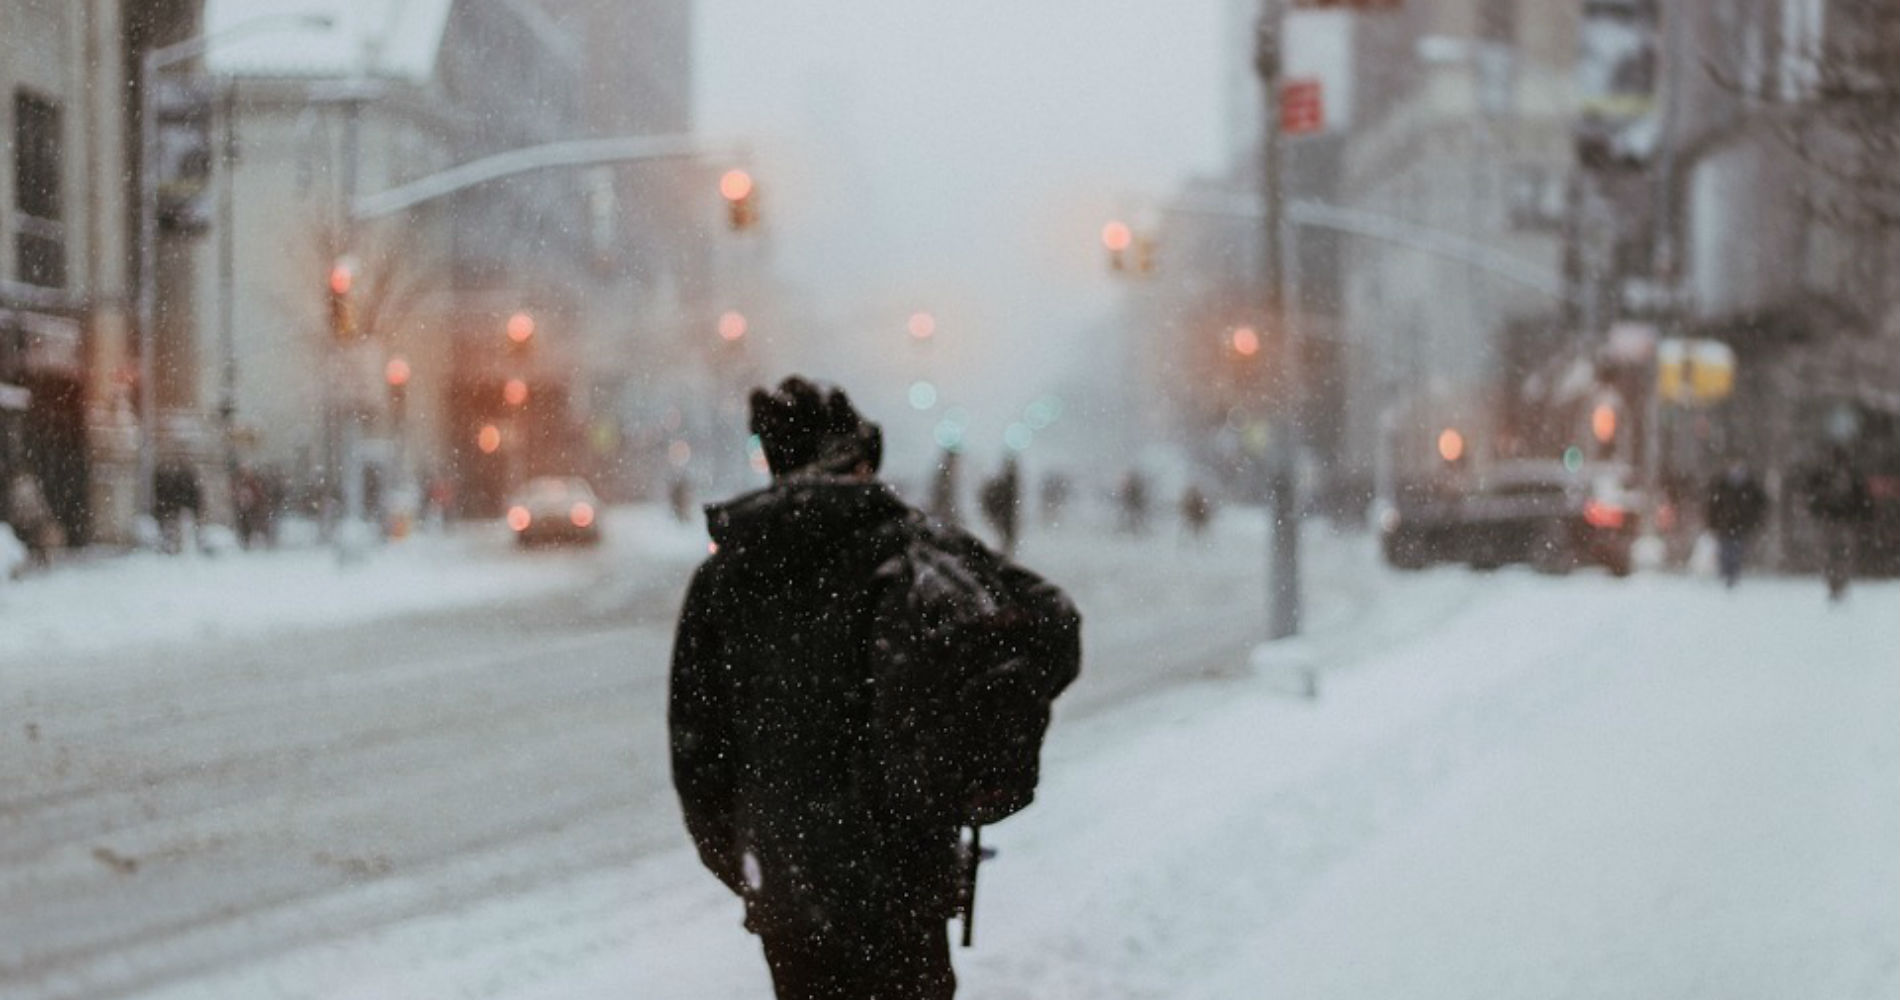 winter, new york city, NYC, snow, bomb cyclone, global warming, weather, blizzard, hs, hero